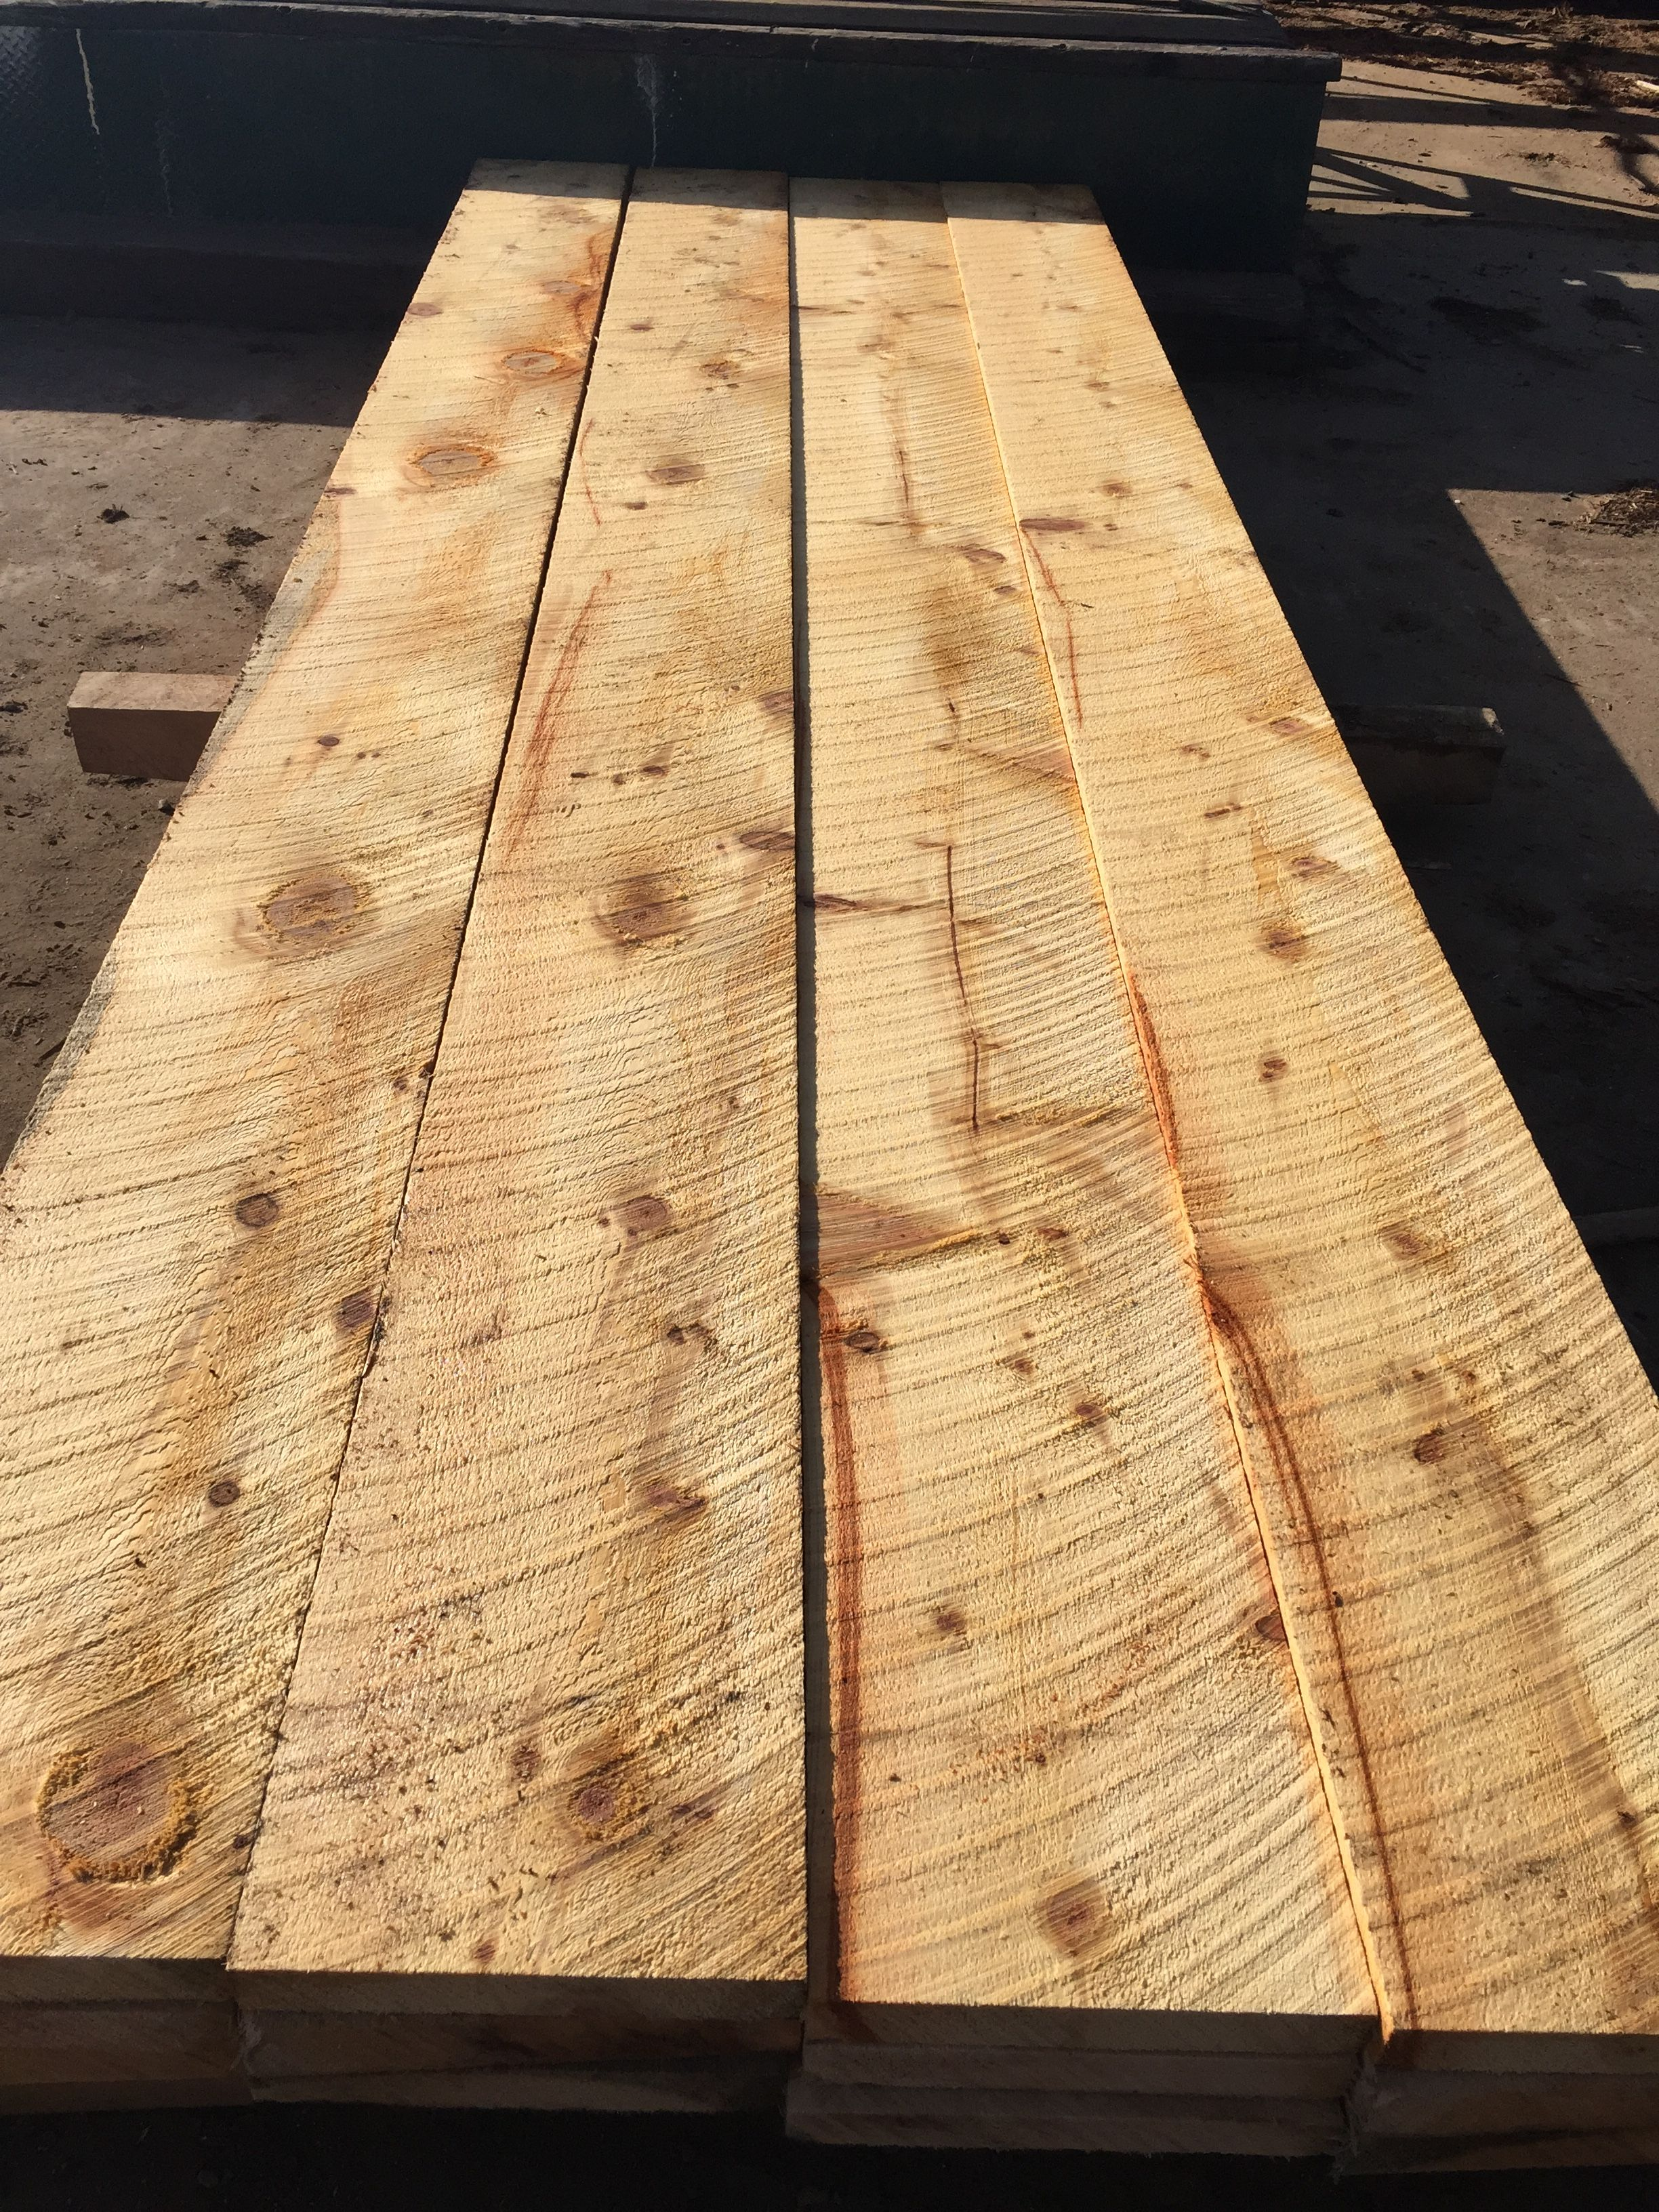 A Rough Guide To Types Of Scientific Evidence: This Is A Rustic Rough Cut Timber With The Saw Marks Still